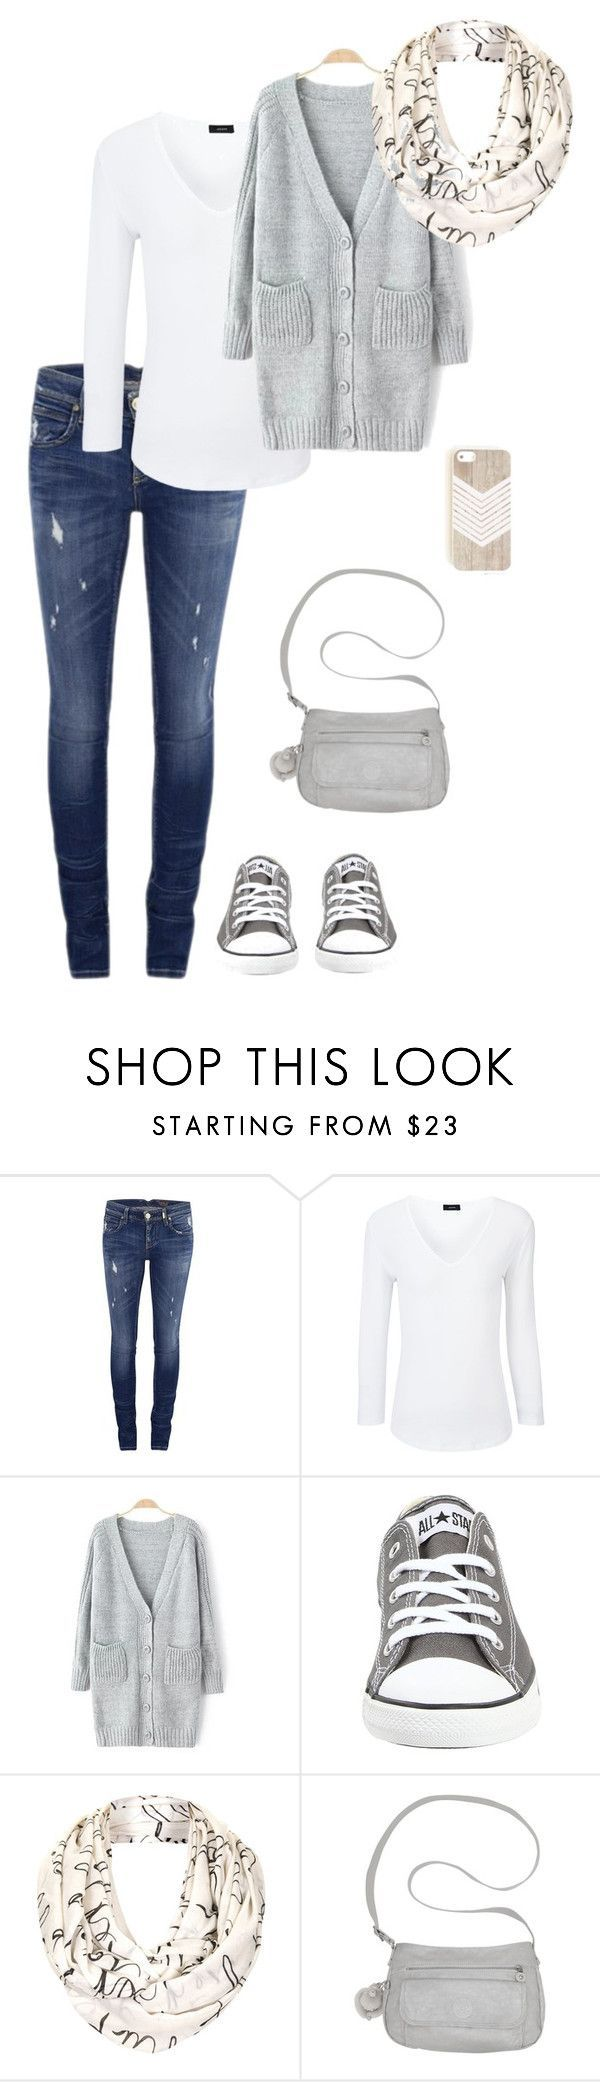 casual grey by miss-hummingbird on Polyvore featuring Mode, ONLY, Joseph, Converse, Topshop, Kipling, casual, converse, comfy und grey